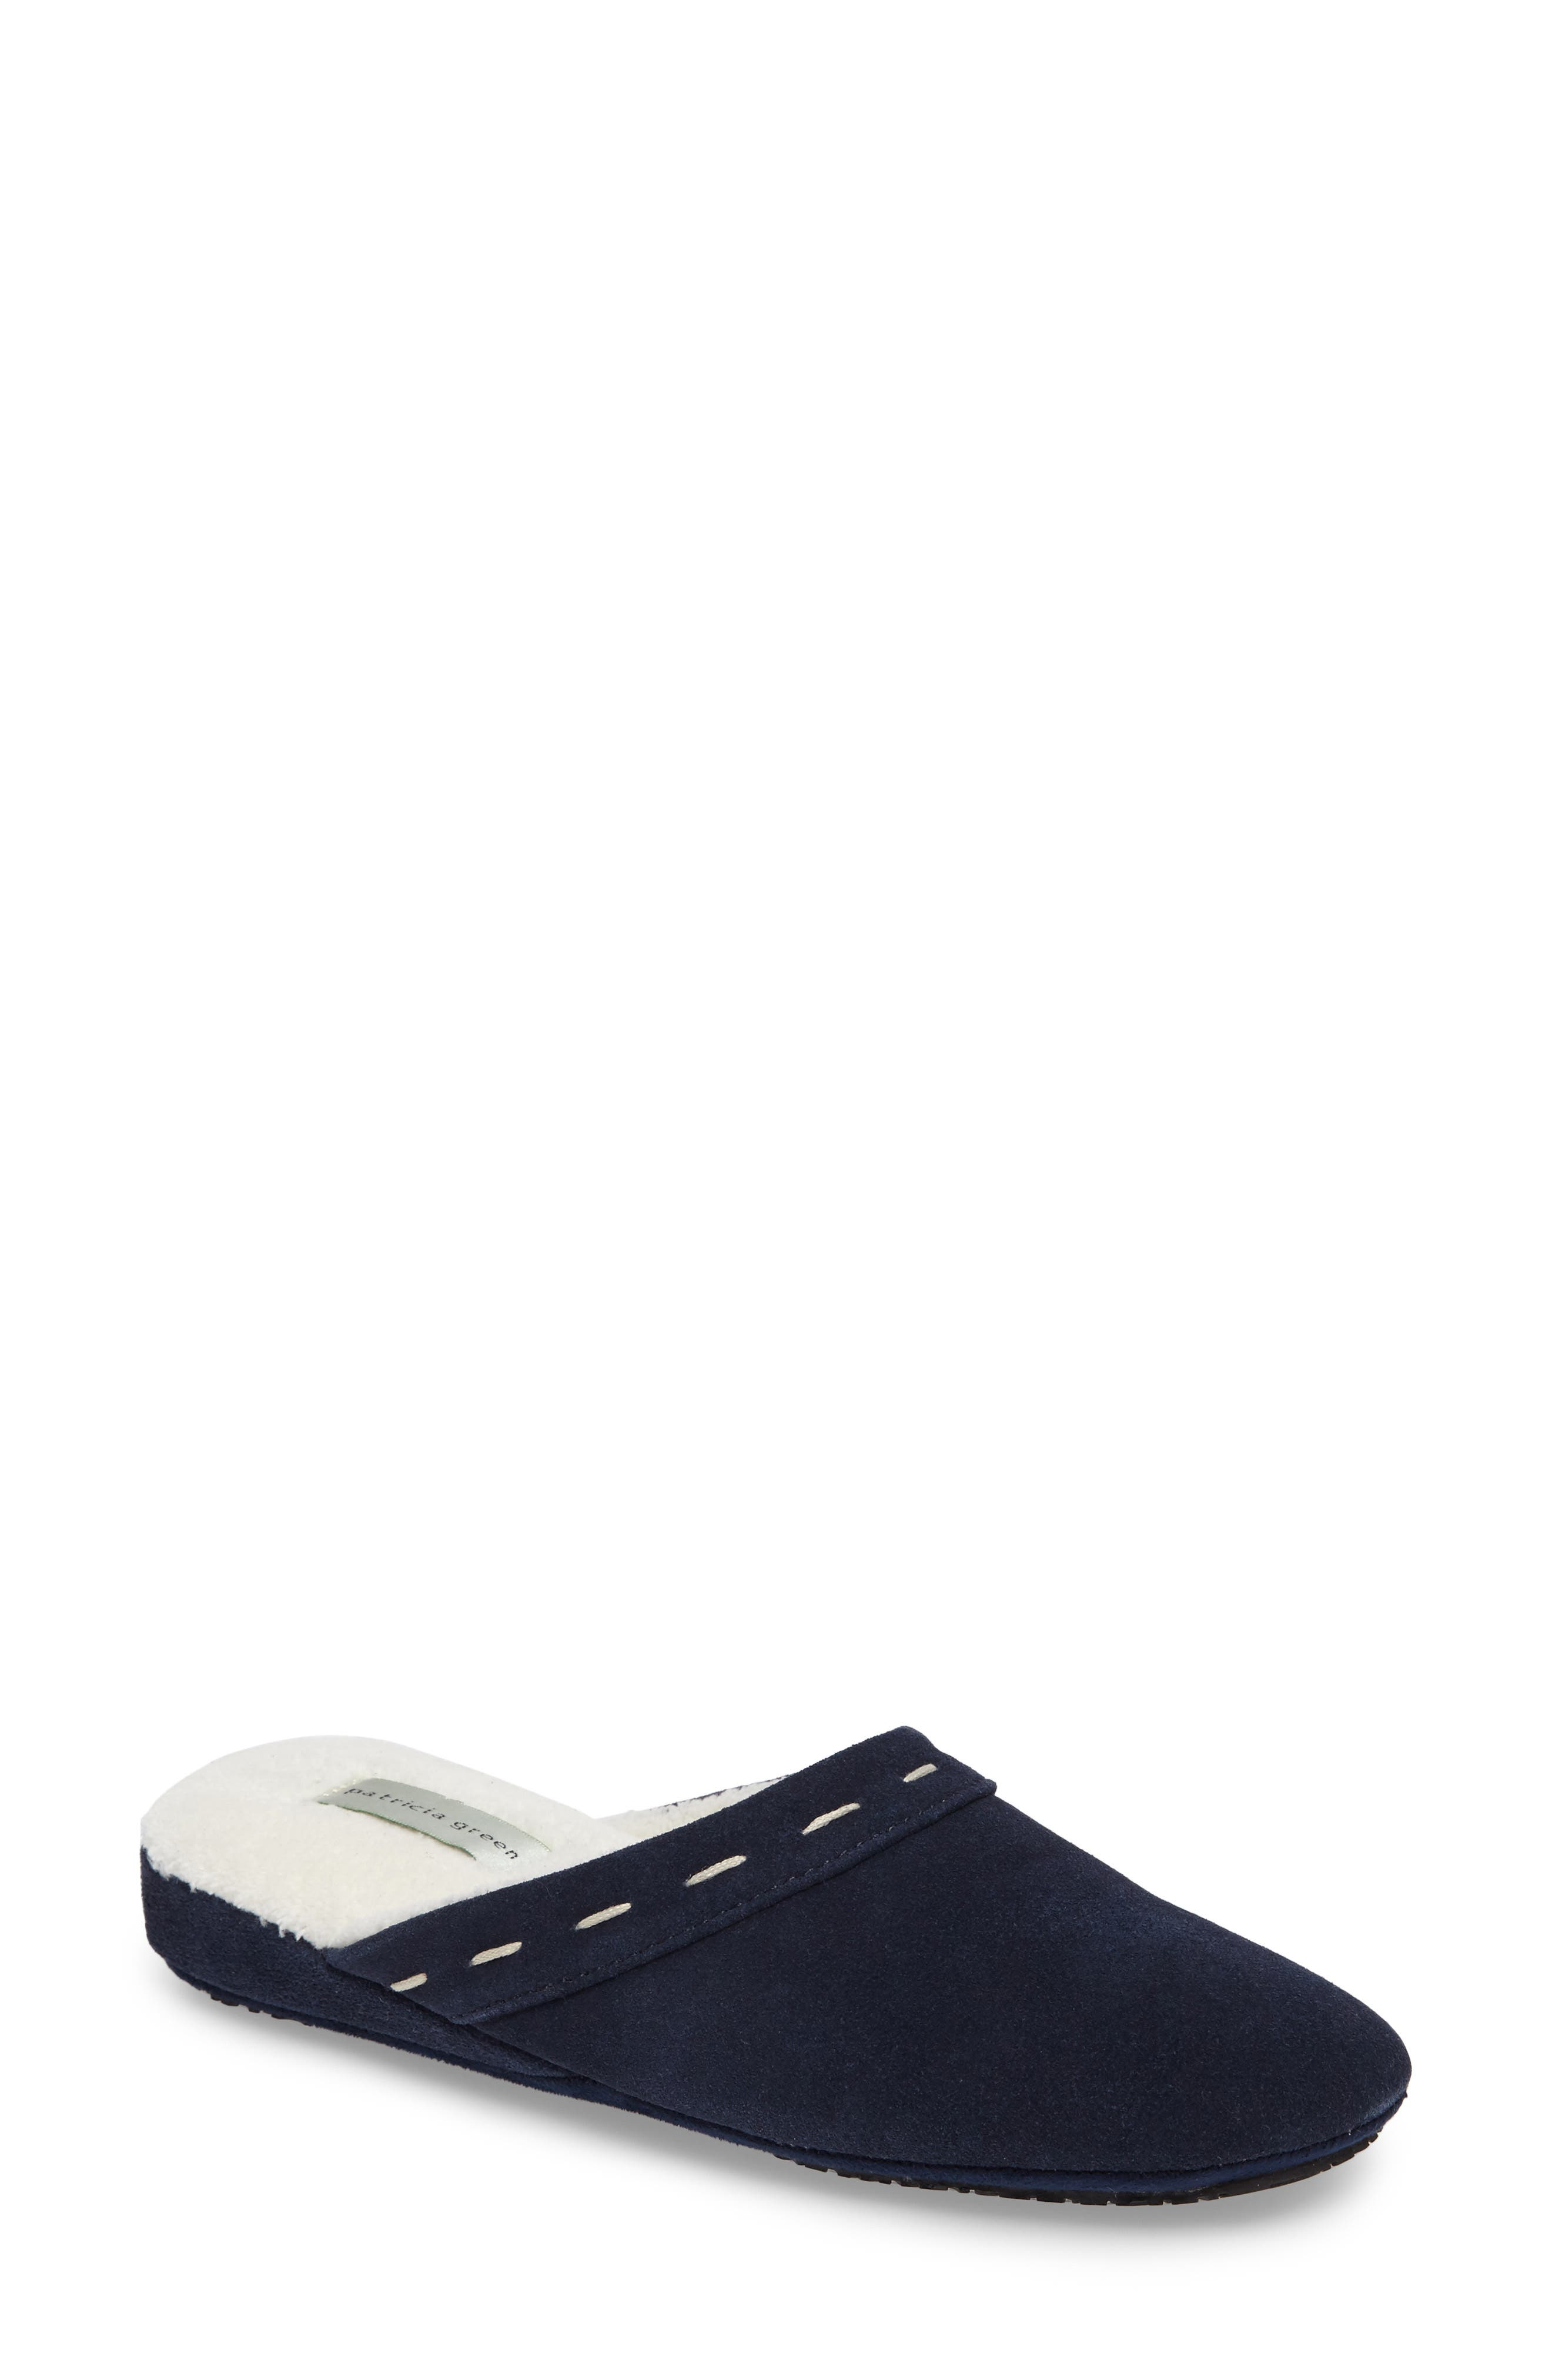 Mayfair Wedge Slipper,                             Main thumbnail 1, color,                             NAVY SUEDE